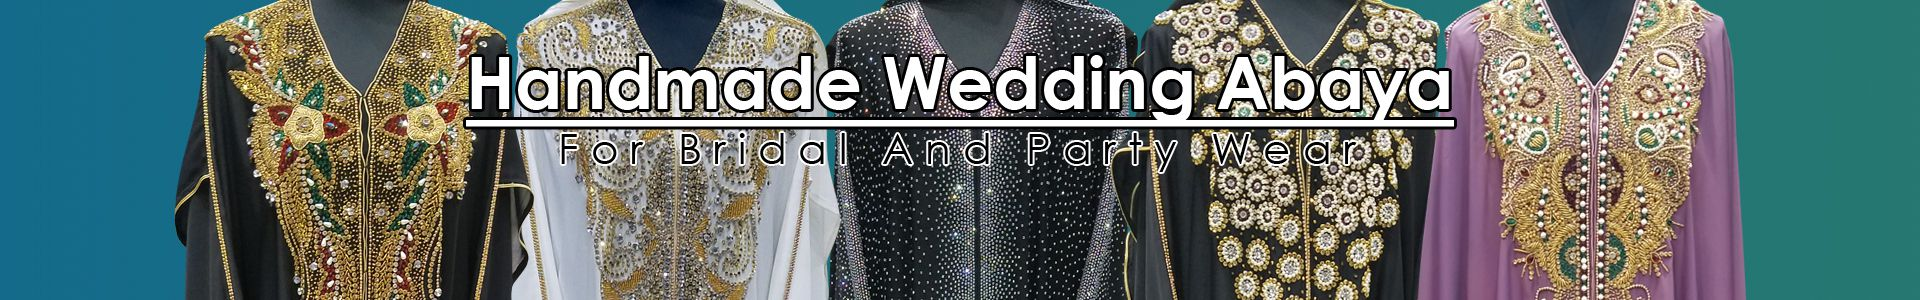 Party & Wedding Abaya